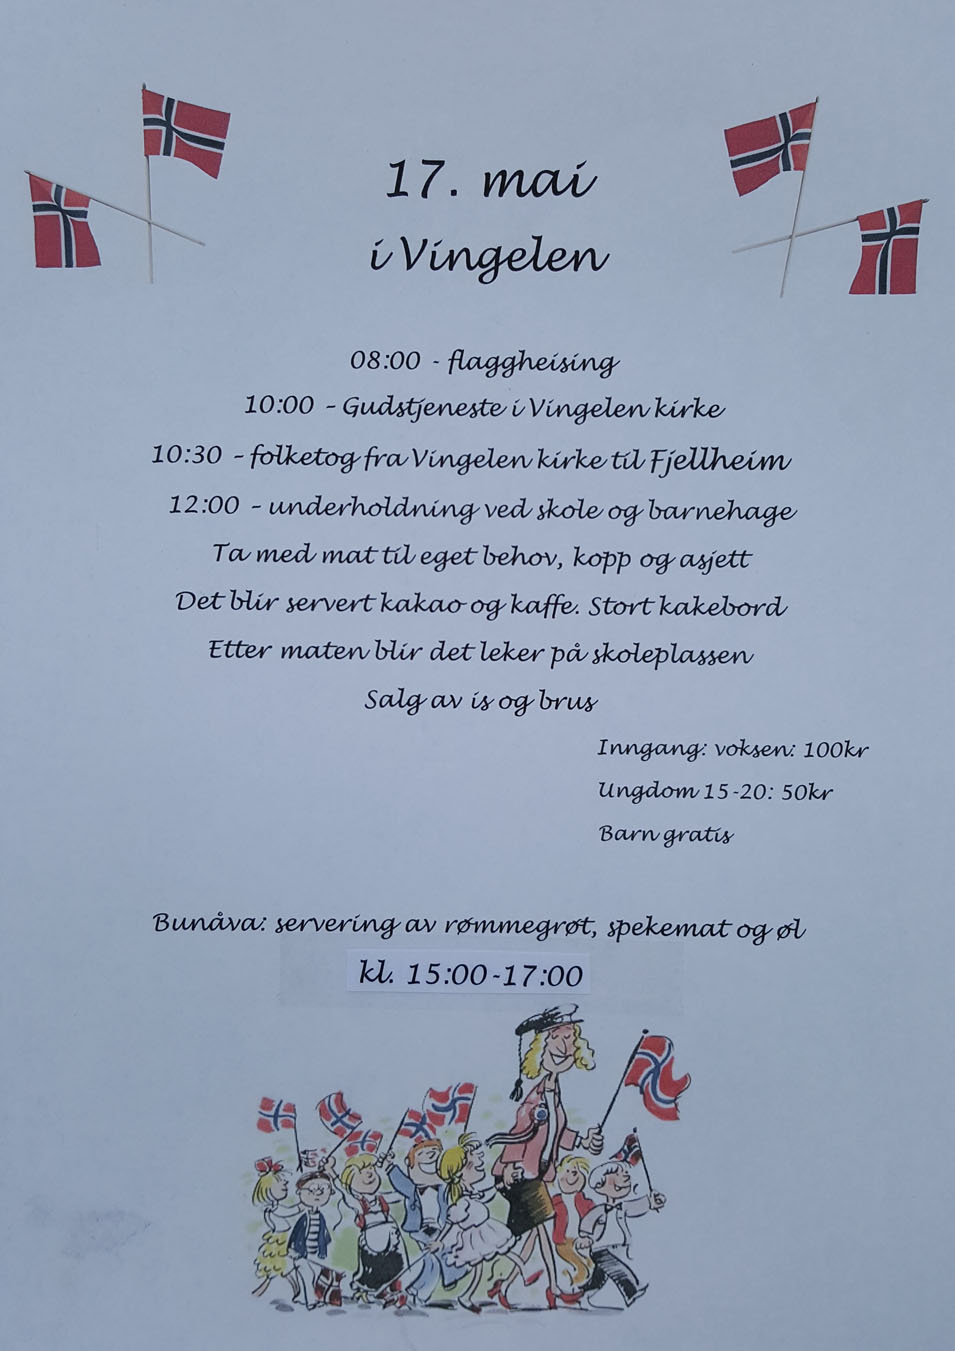 17 mai program Vingelen